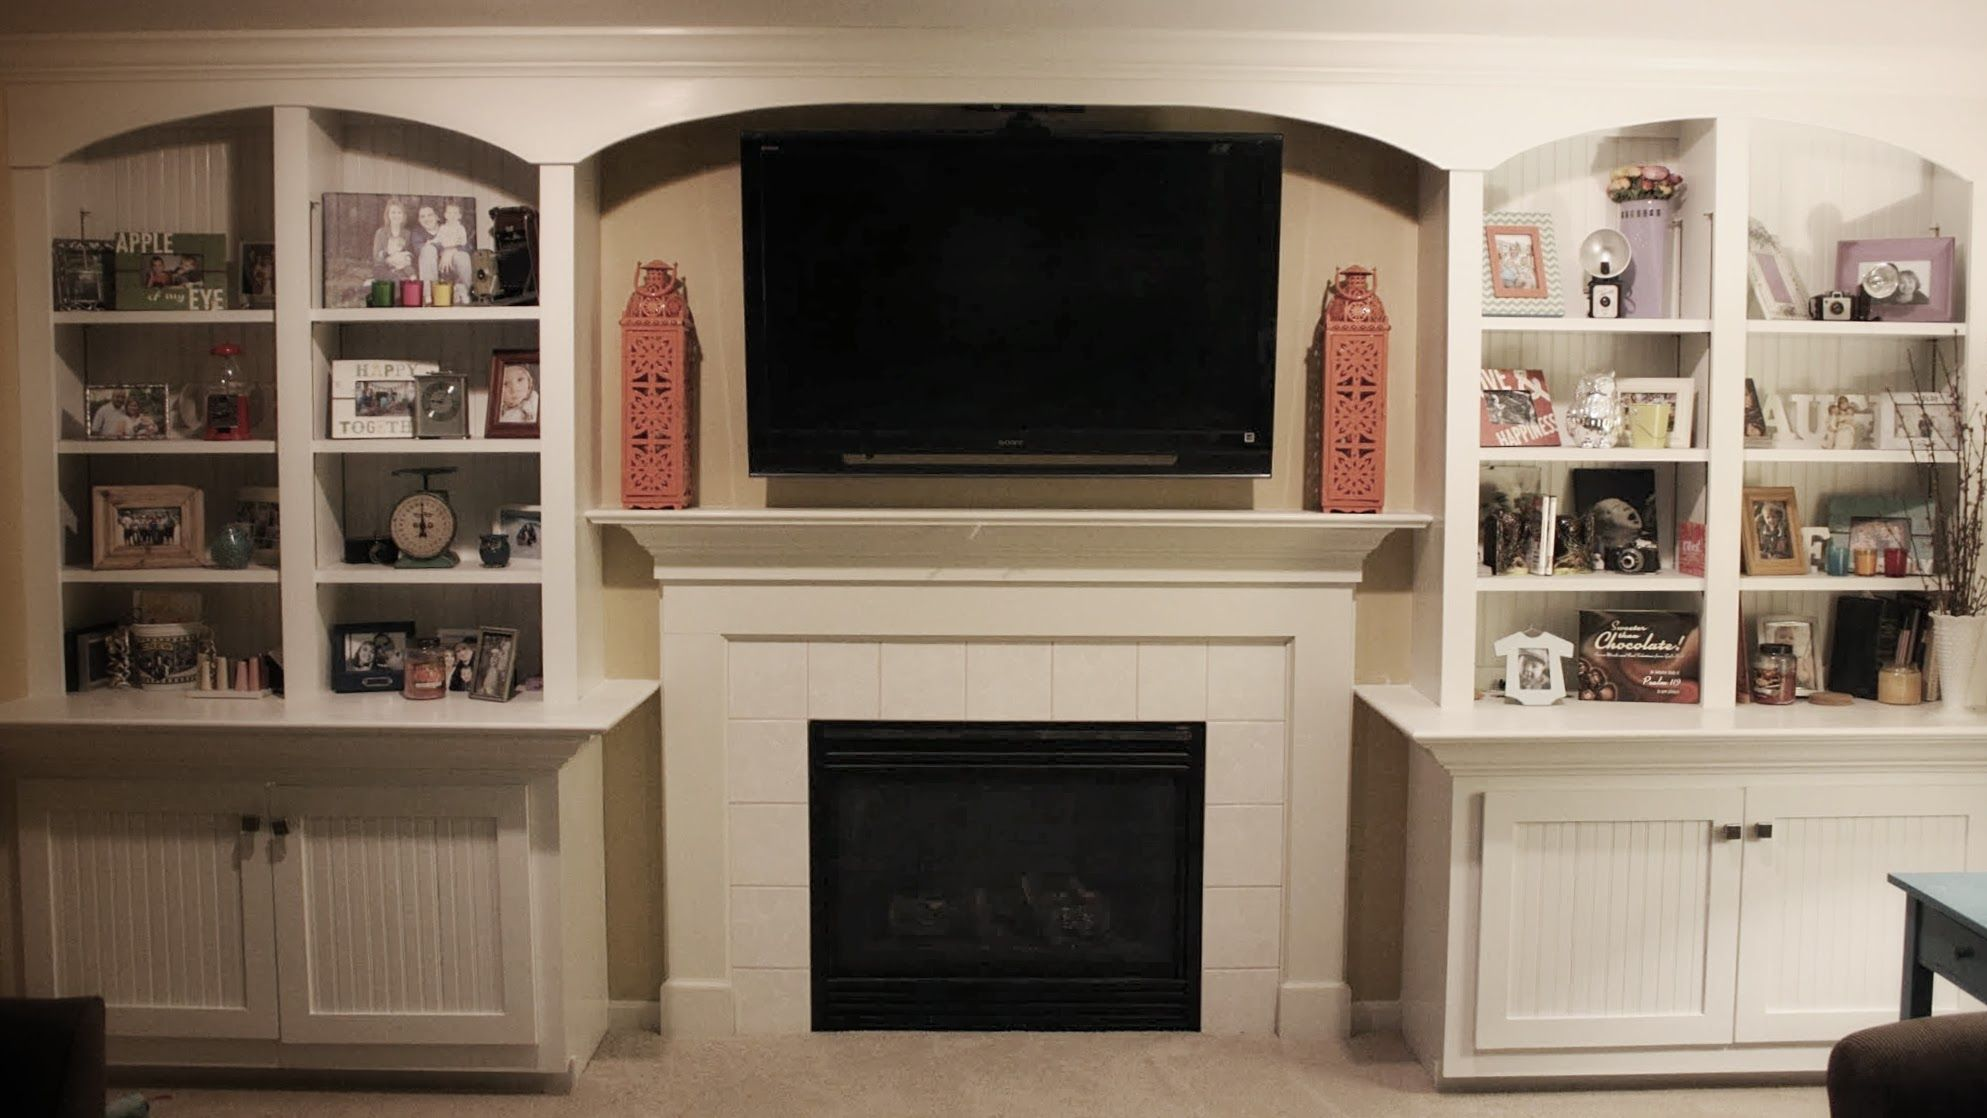 Awesome bookcase entertainment center ideas for the home